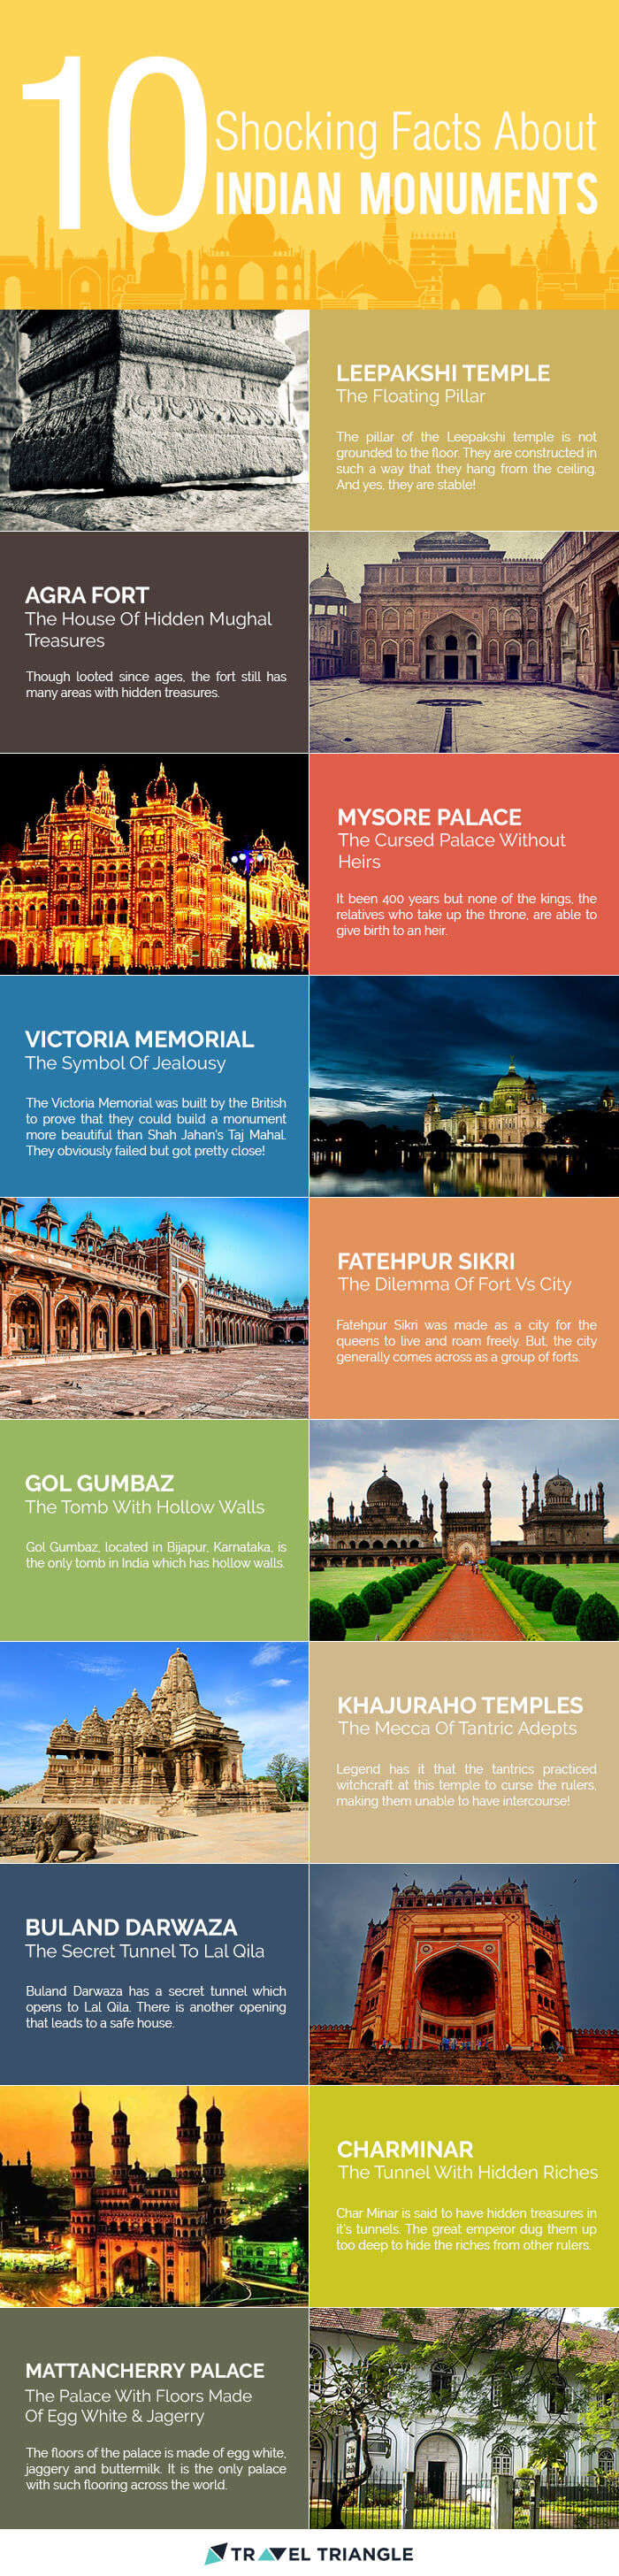 shocking-facts-indian-monuments